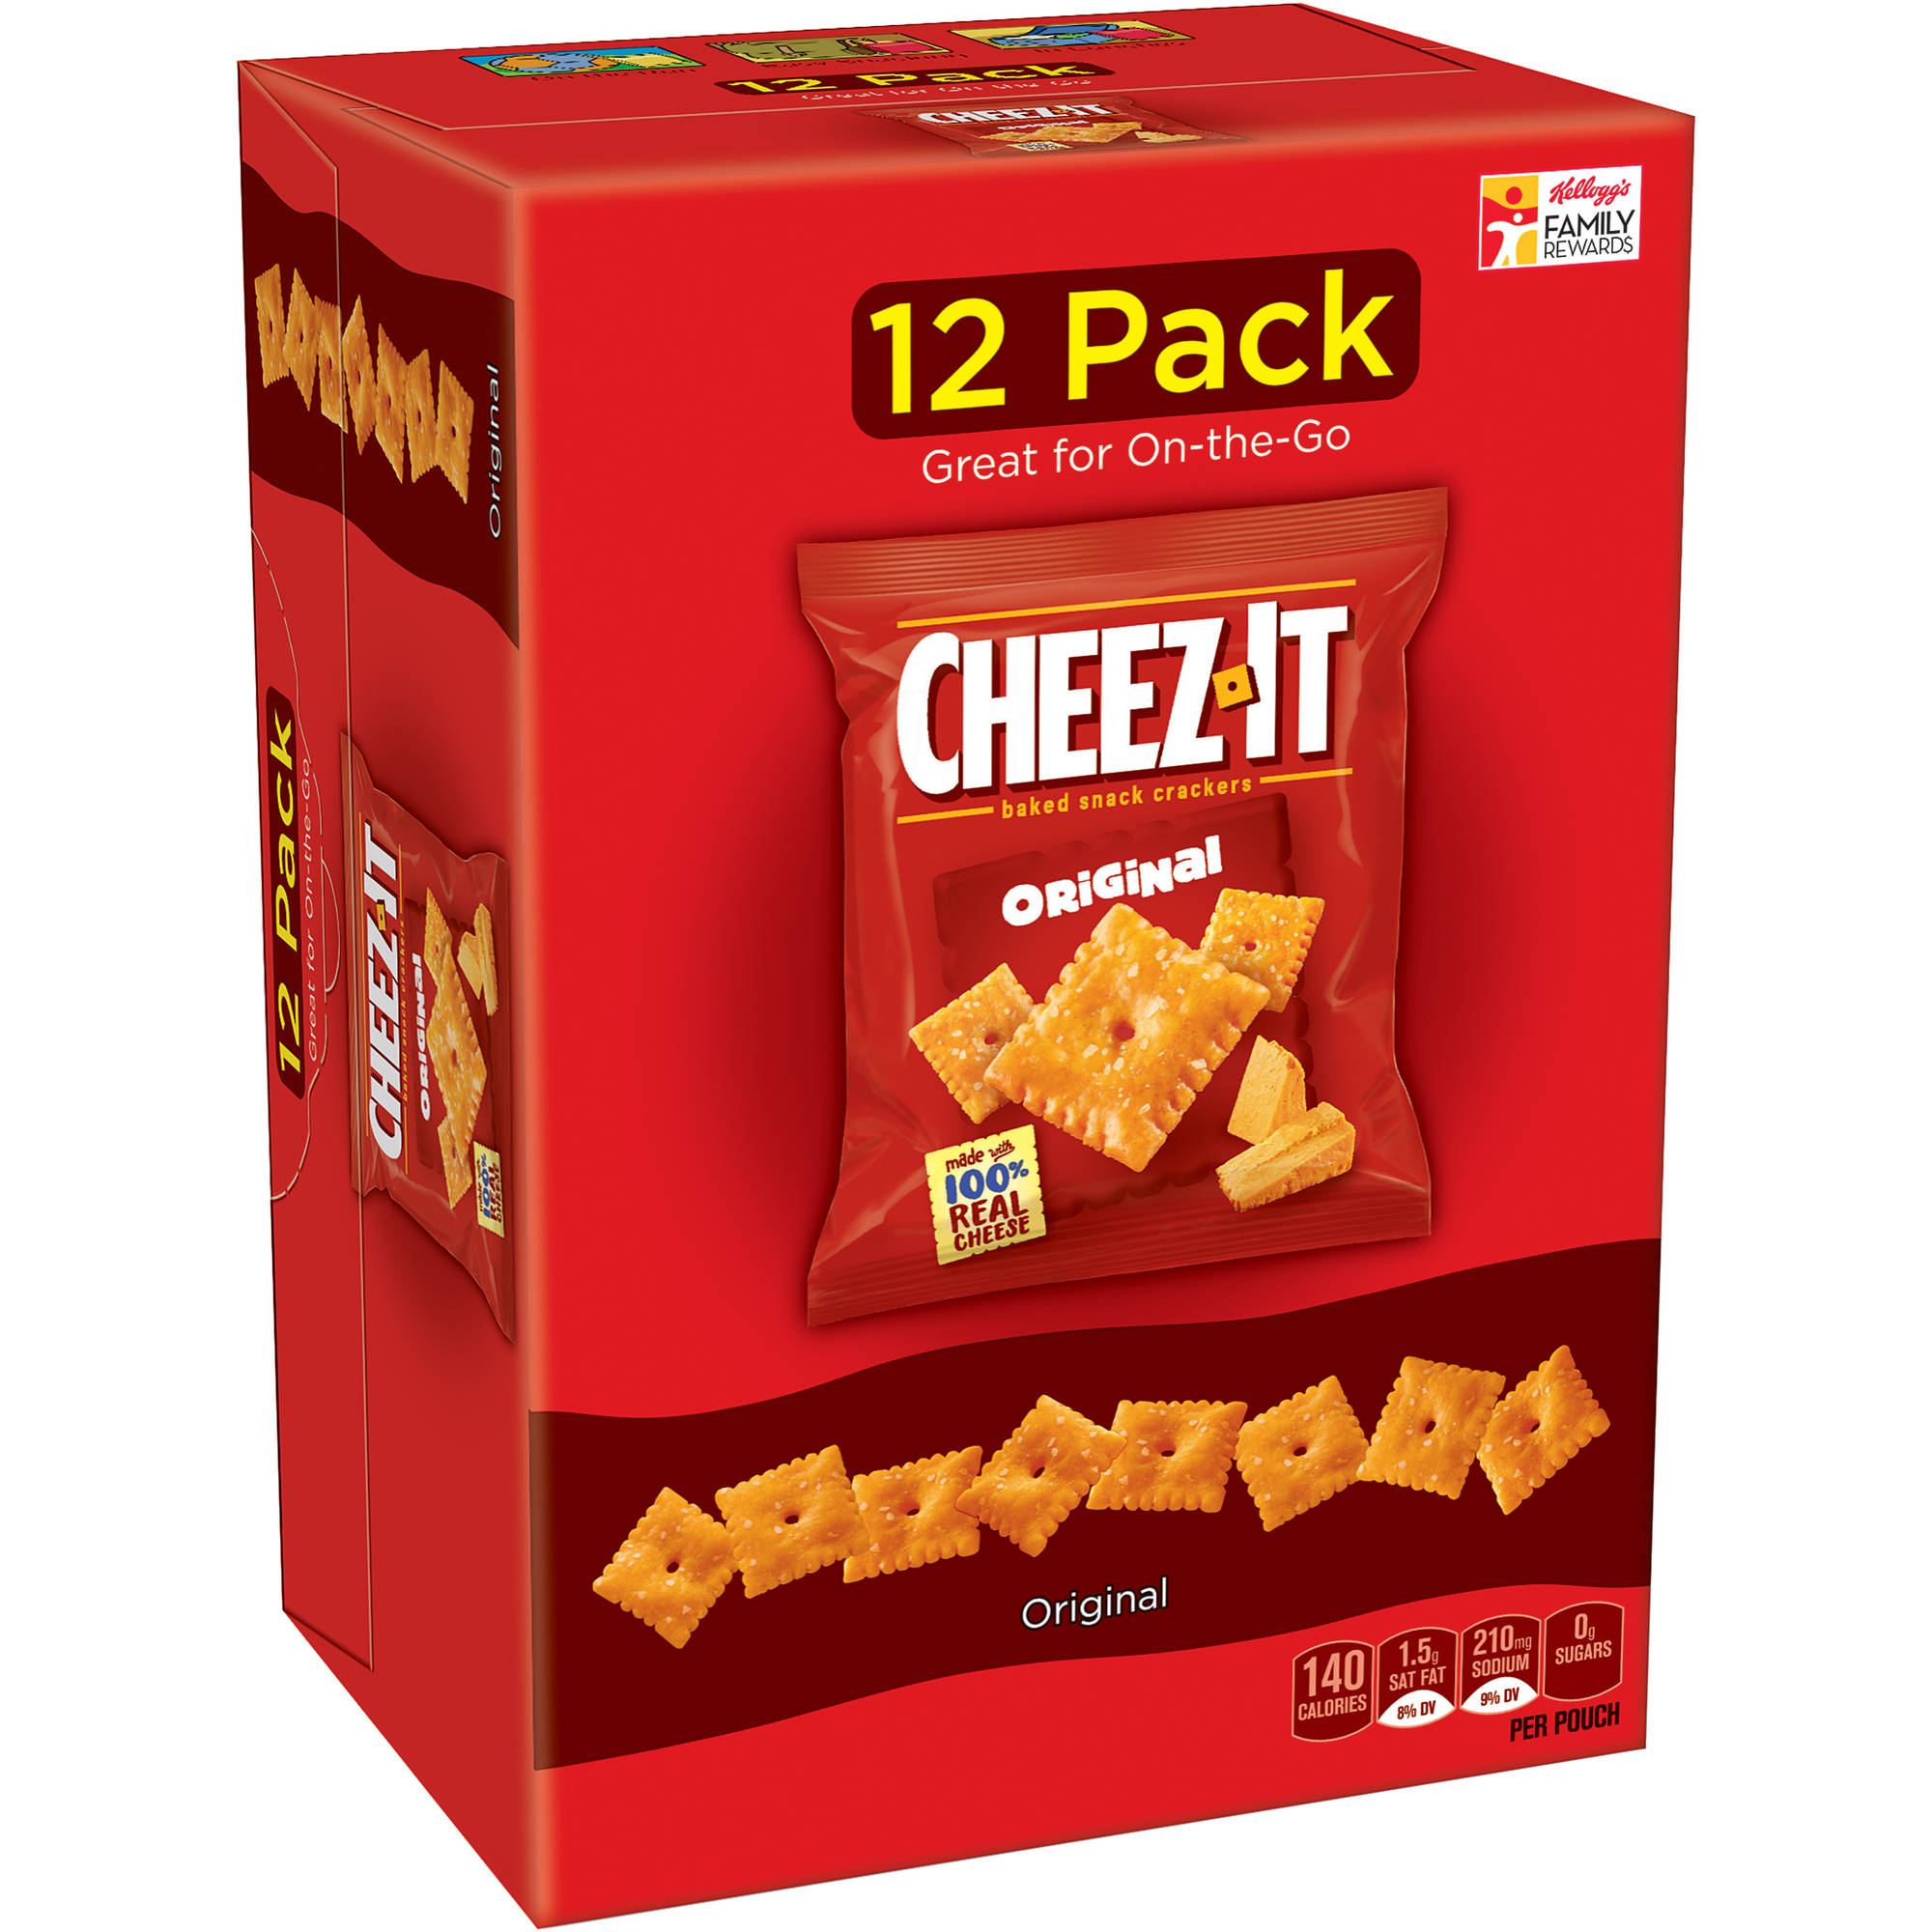 Cheez-It Original Baked Snack Crackers, 1 oz, 12 count